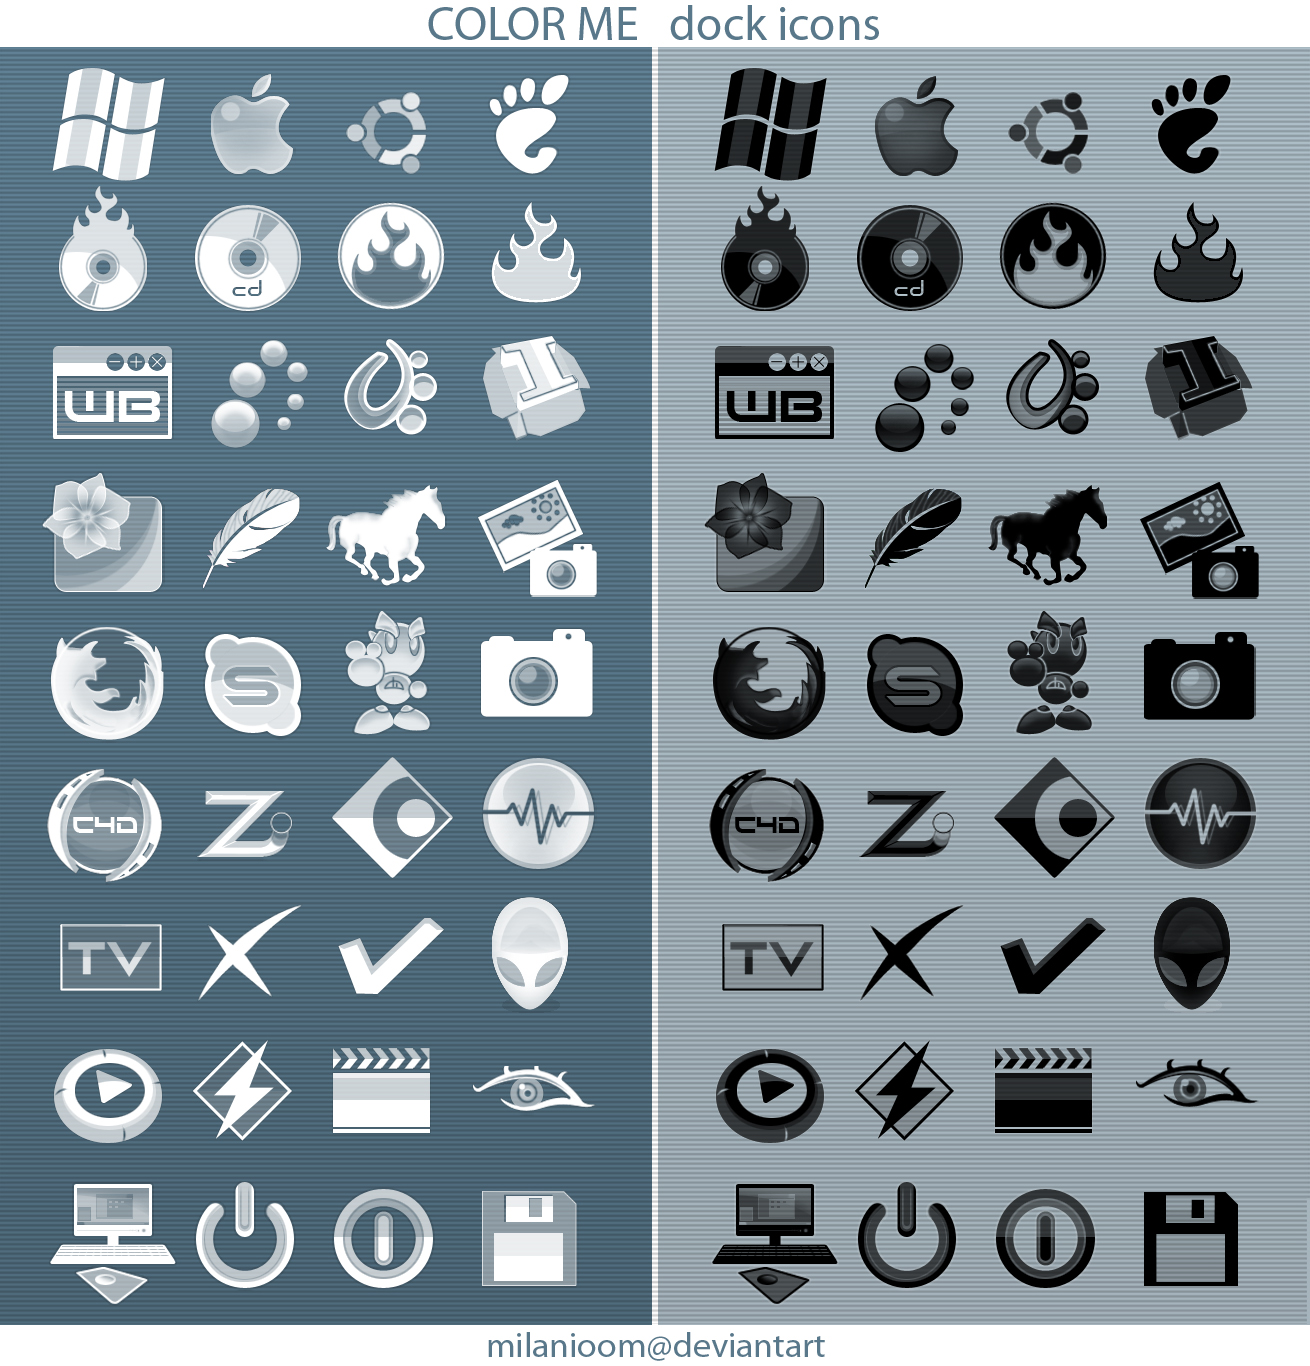 Color Me_dock icons